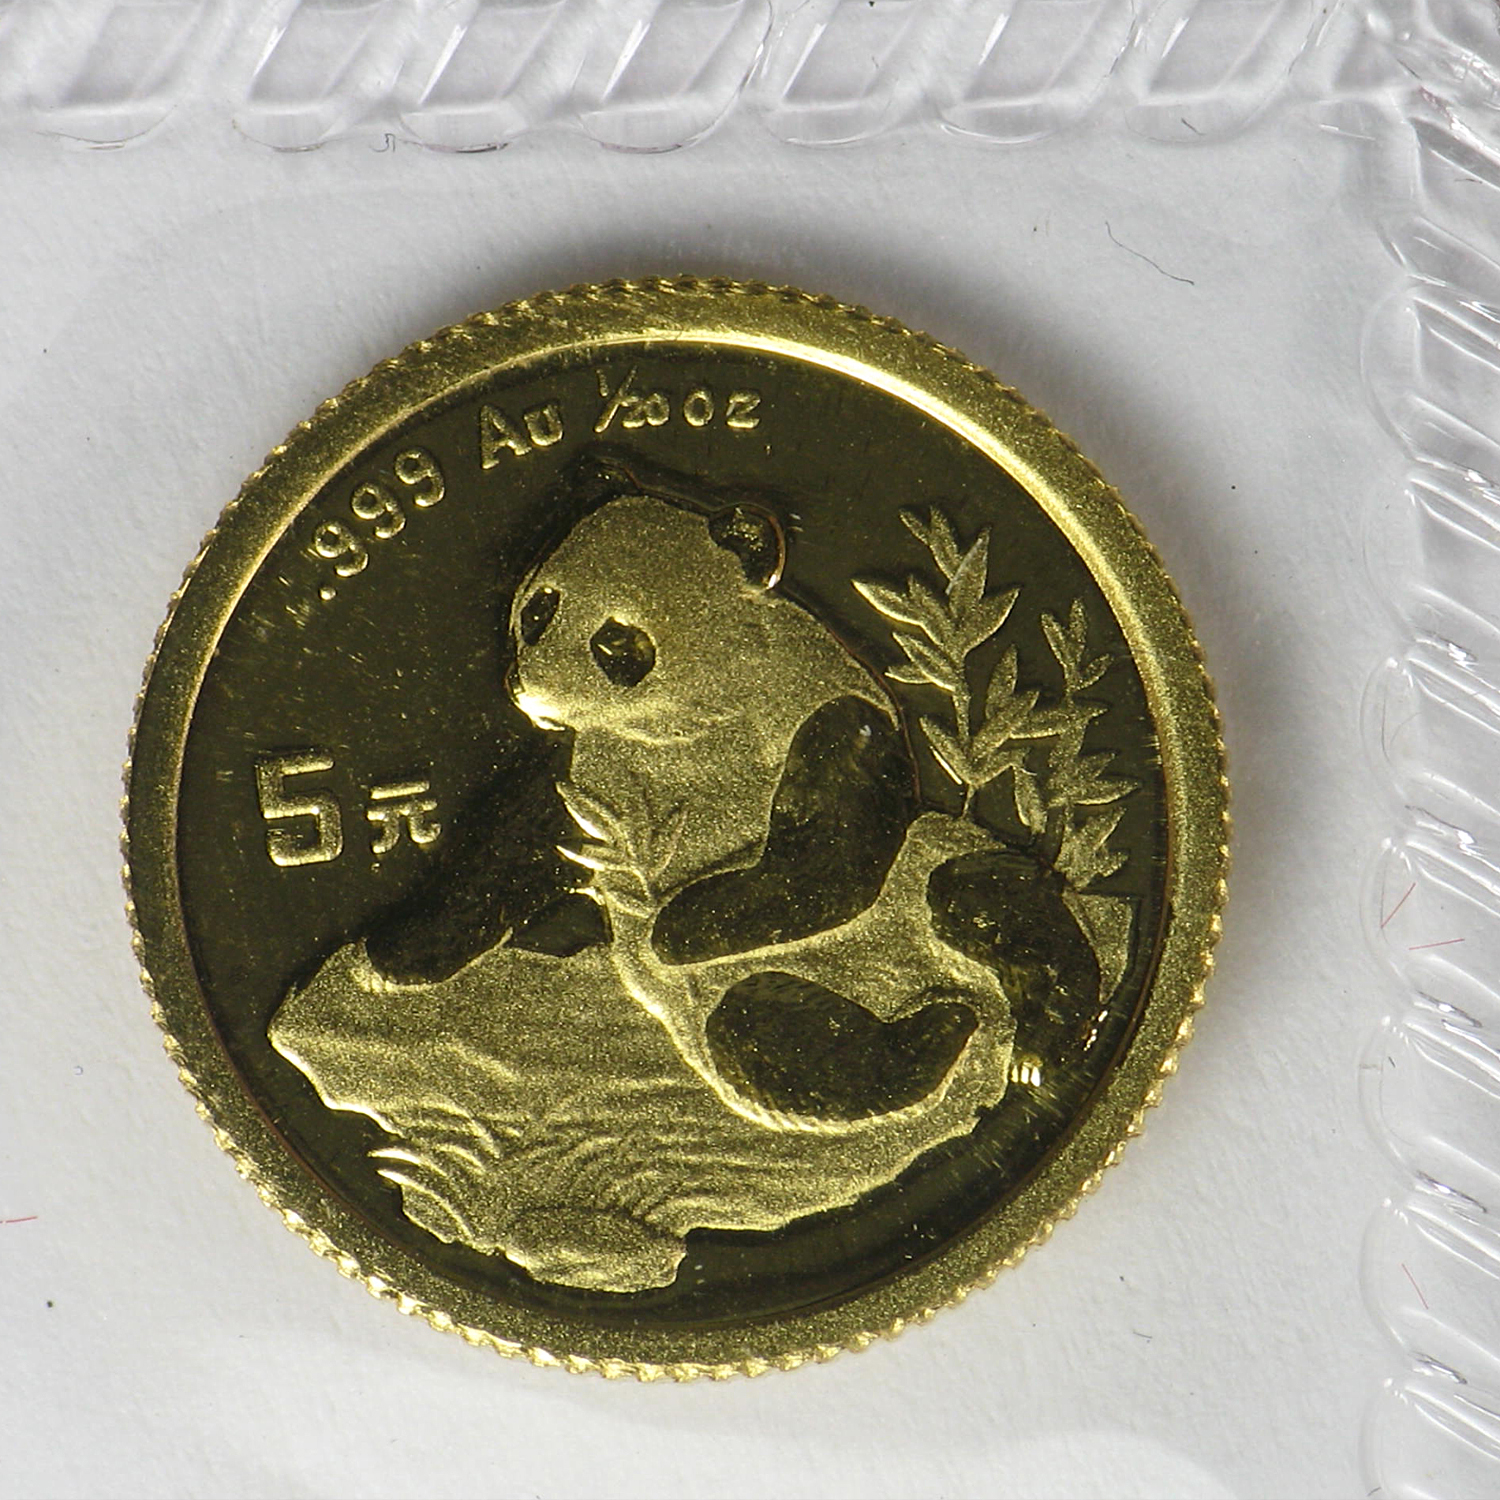 1998 China 1/20 oz Gold Panda Small Date BU (Sealed)